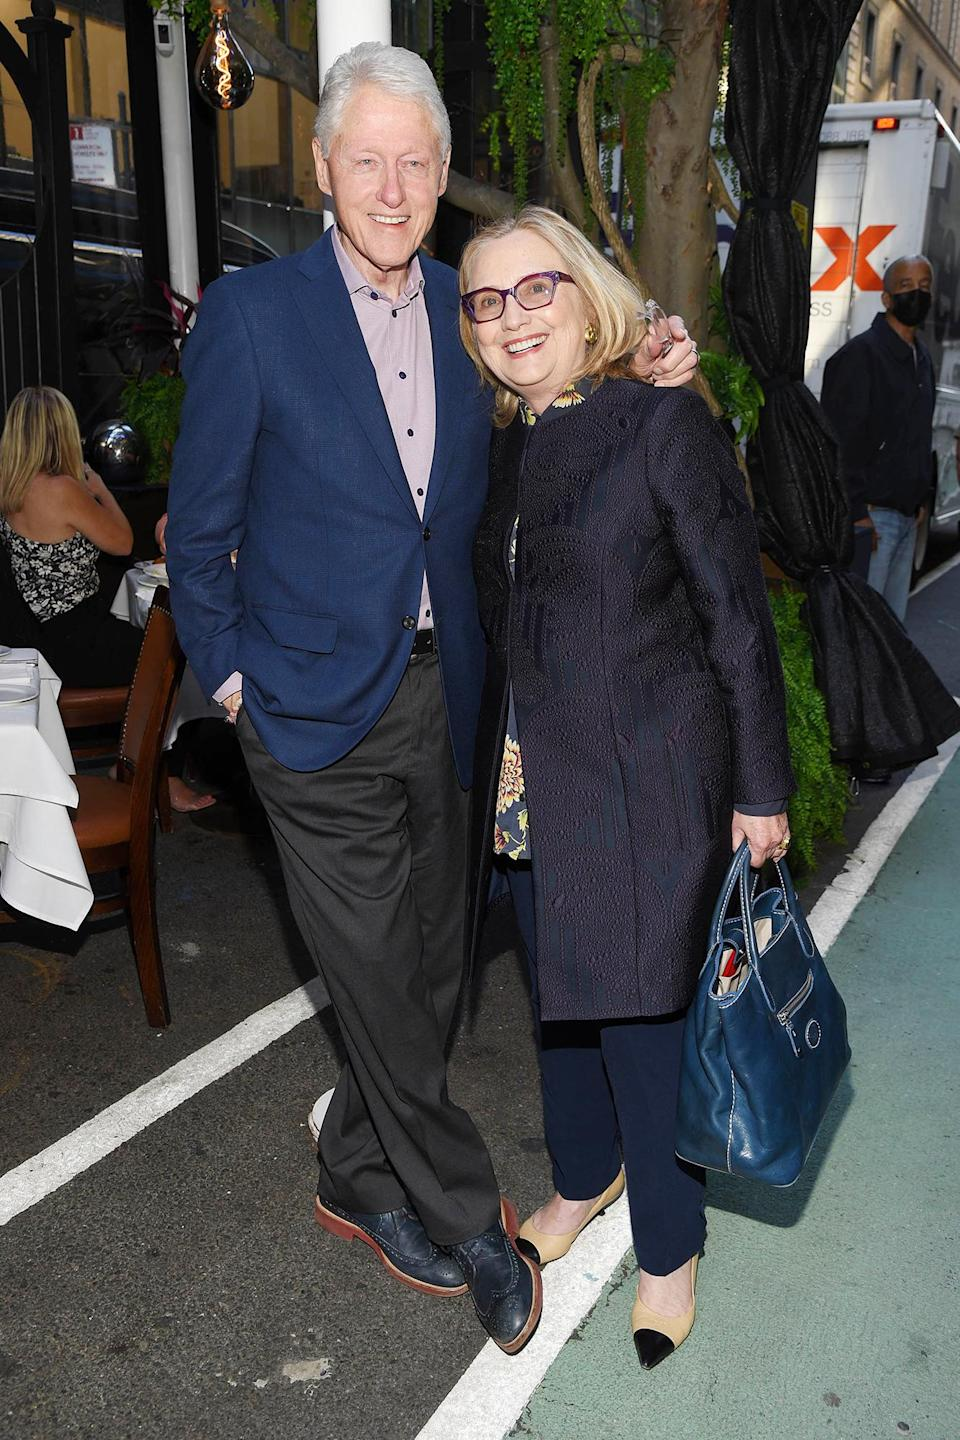 <p>Bill and Hillary Clinton step out for a bite to eat on June 23 in N.Y.C</p>